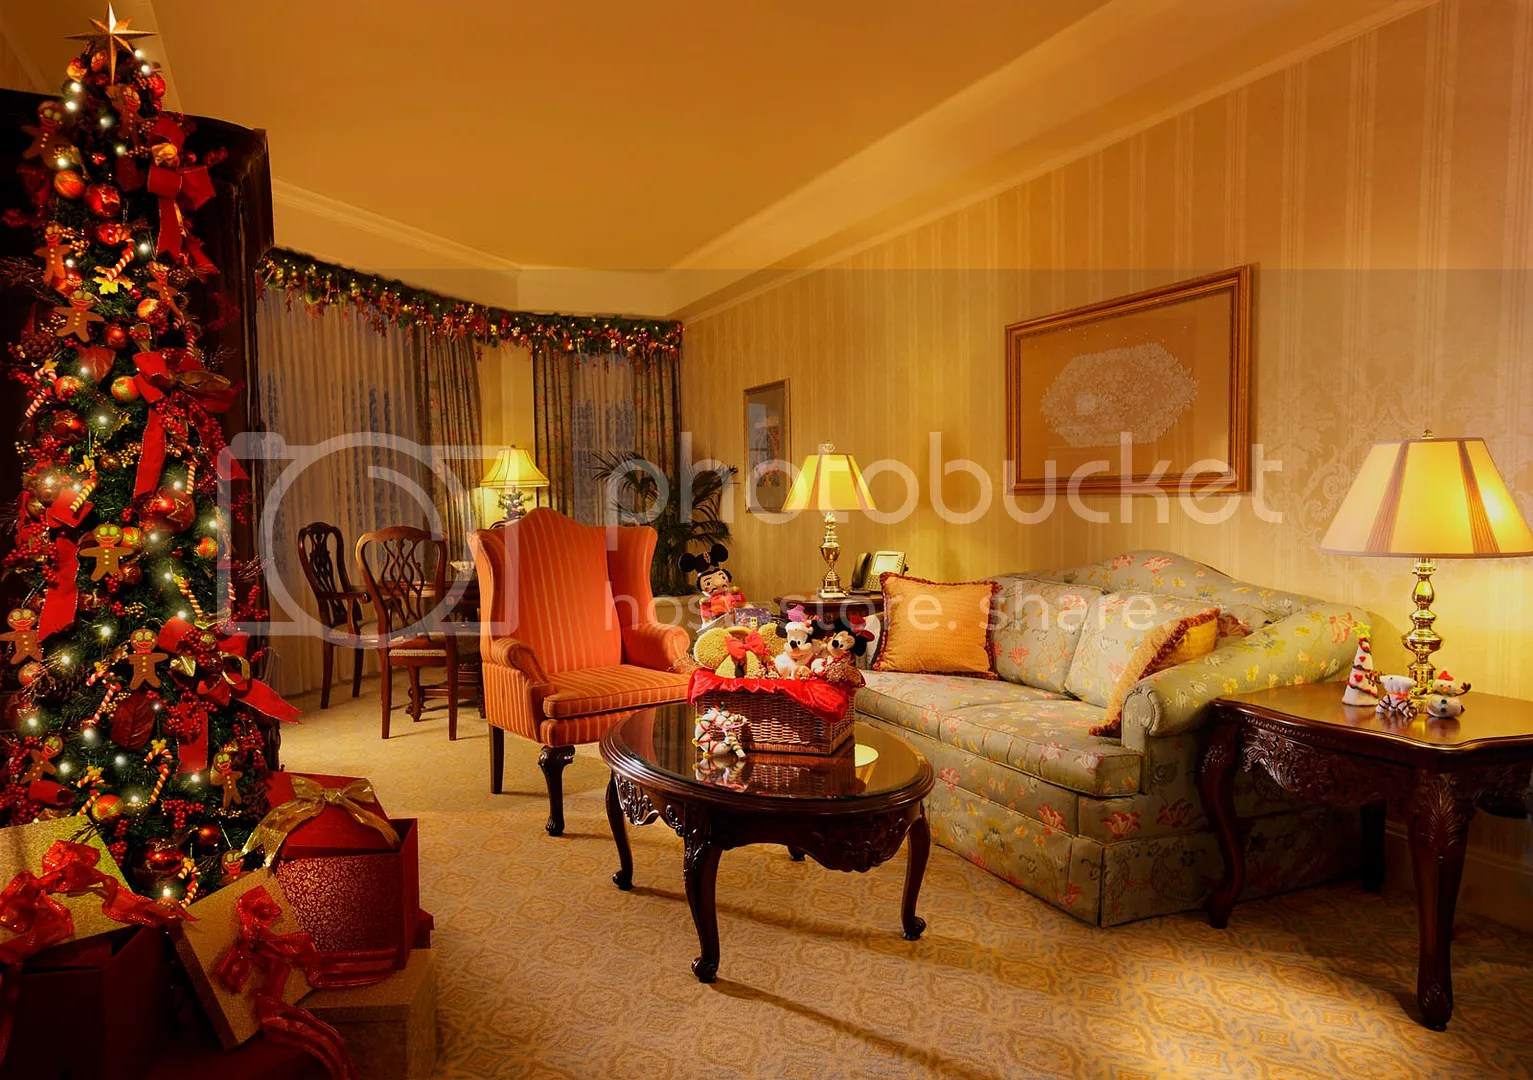 Christmas-themed Hotel Rooms